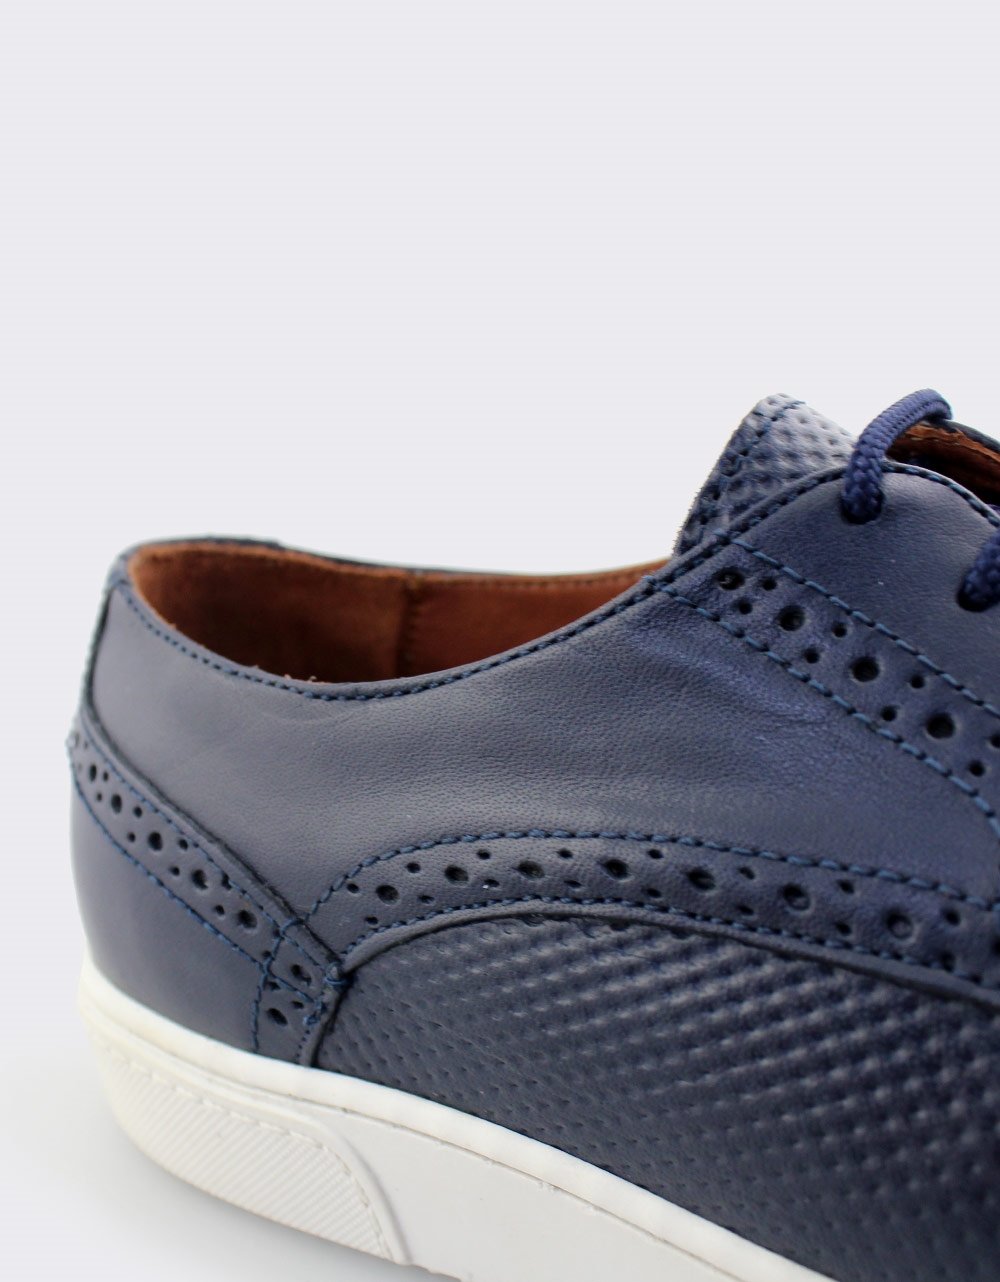 0f5ac9b424d Inshoes.gr. Ανδρικά loafers δερμάτινα με λευκή σόλα | Inshoes.gr Μπλε